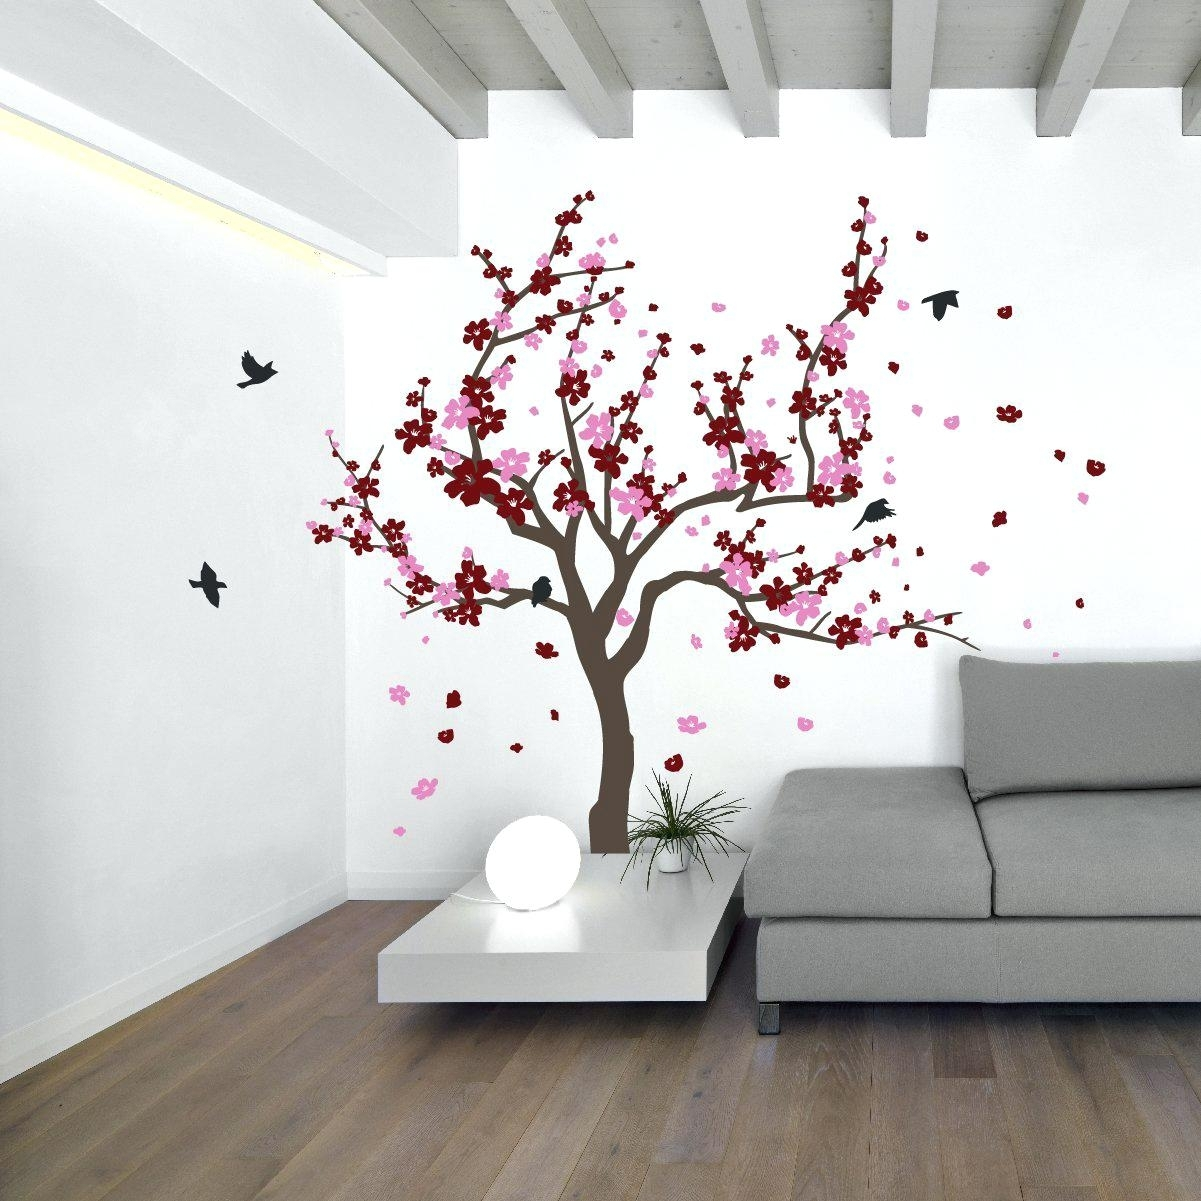 Blossom Tree Wall Decal Uk – Gutesleben Within Newest Cherry Blossom Wall Art (View 3 of 20)